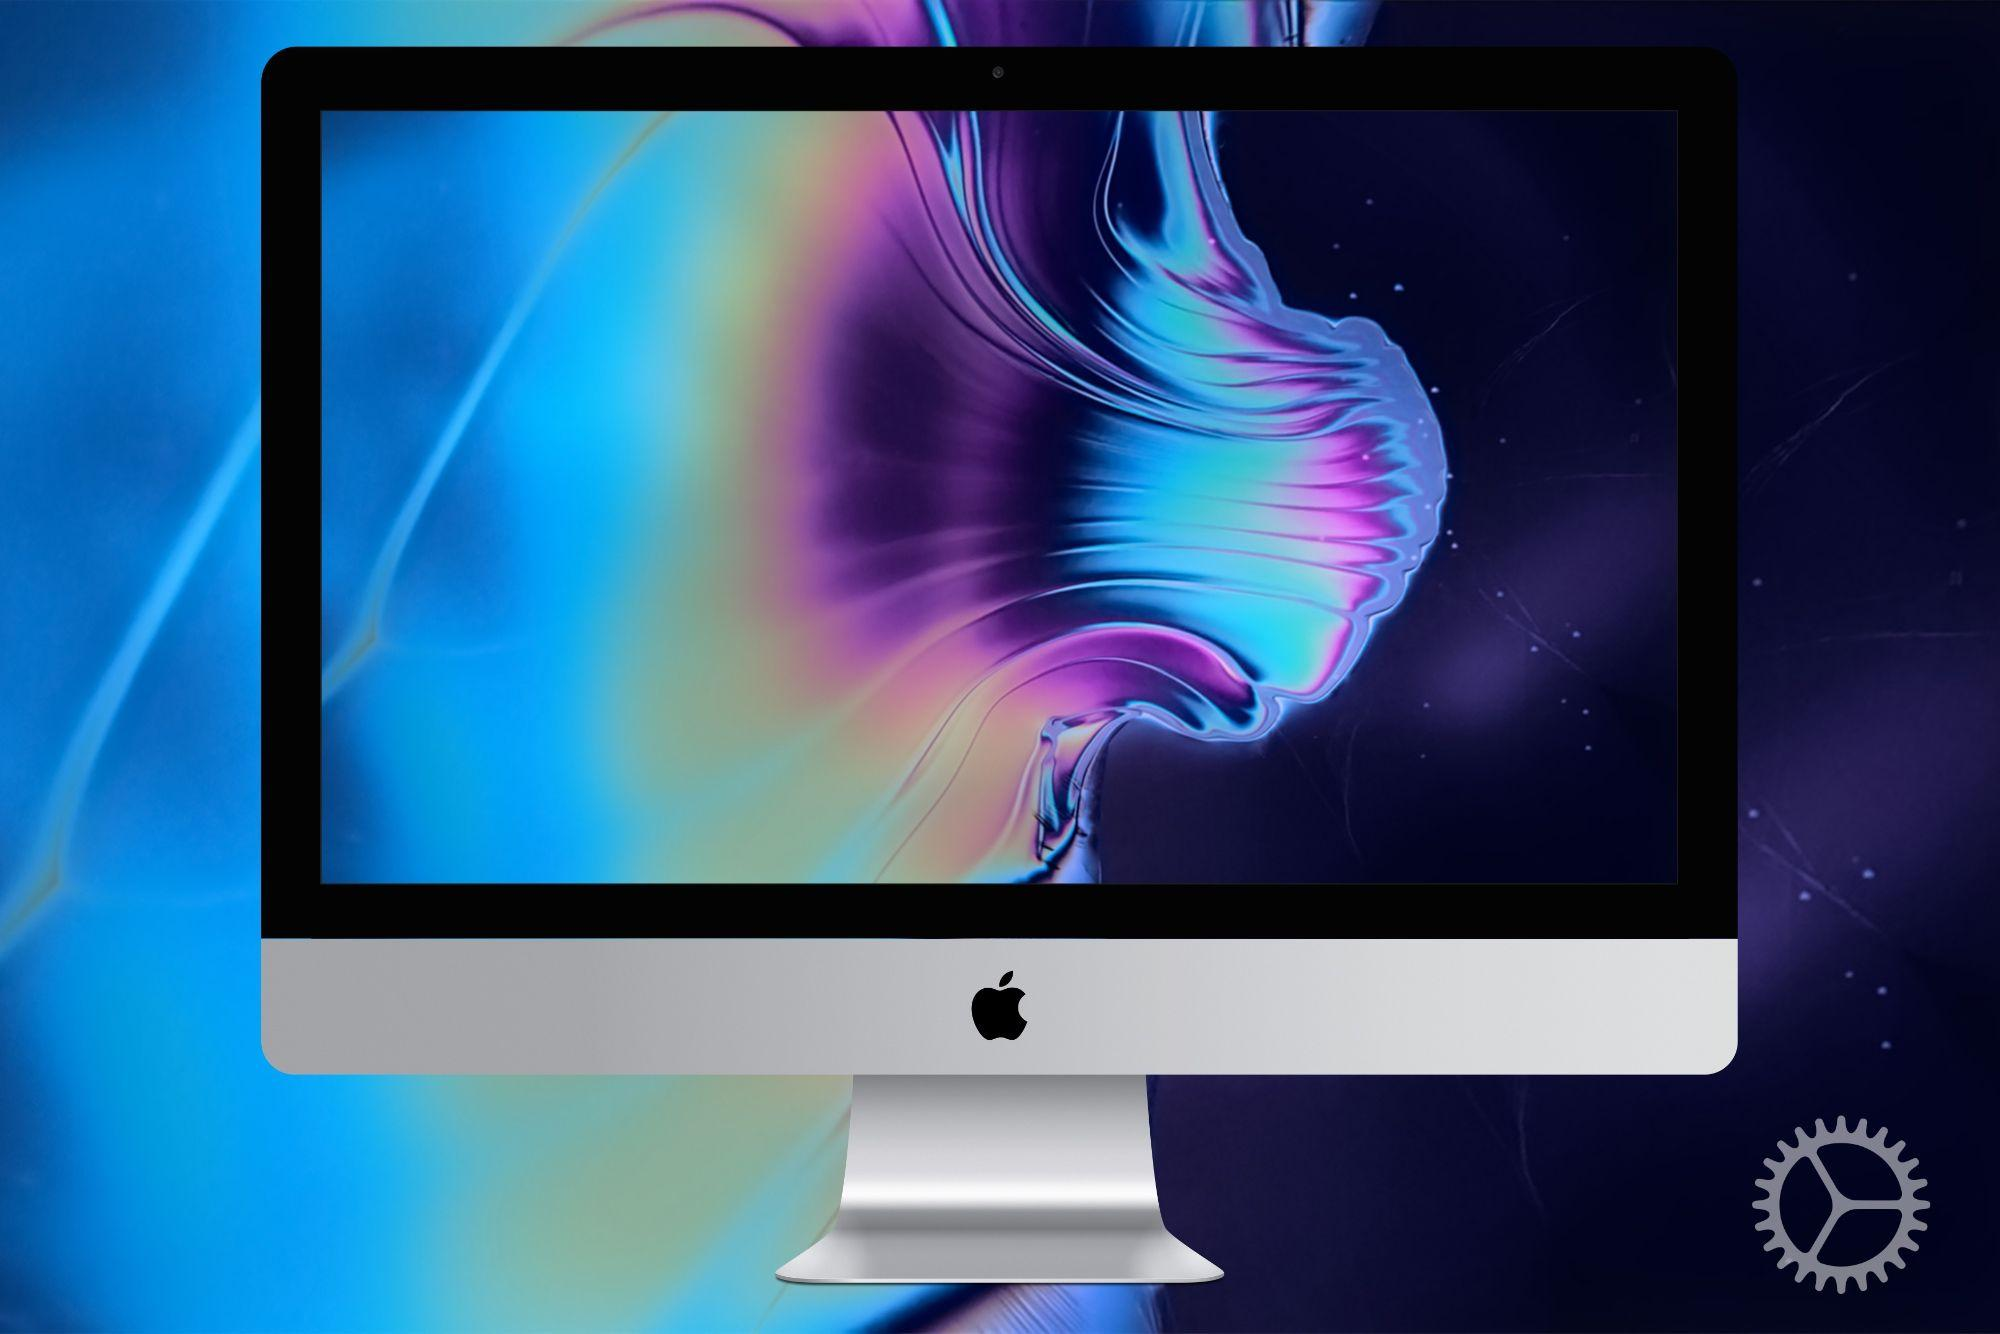 Download the official iMac Pro wallpapers here – iupdateos